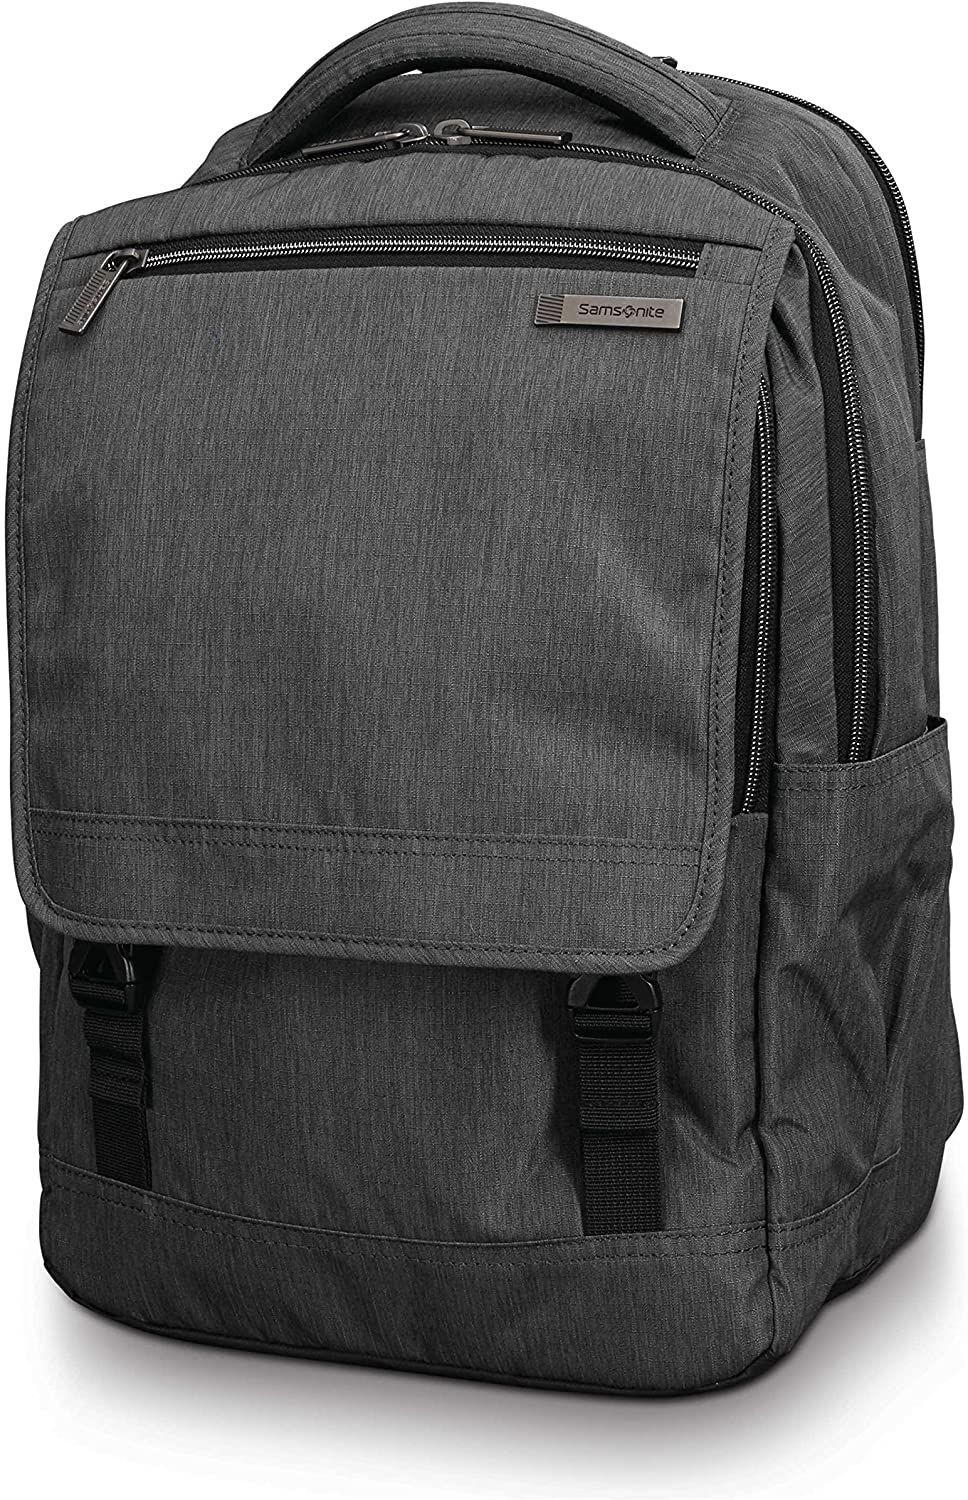 Samsonite Modern Utility Paracycle Laptop Backpack, Charcoal Heather, One Size